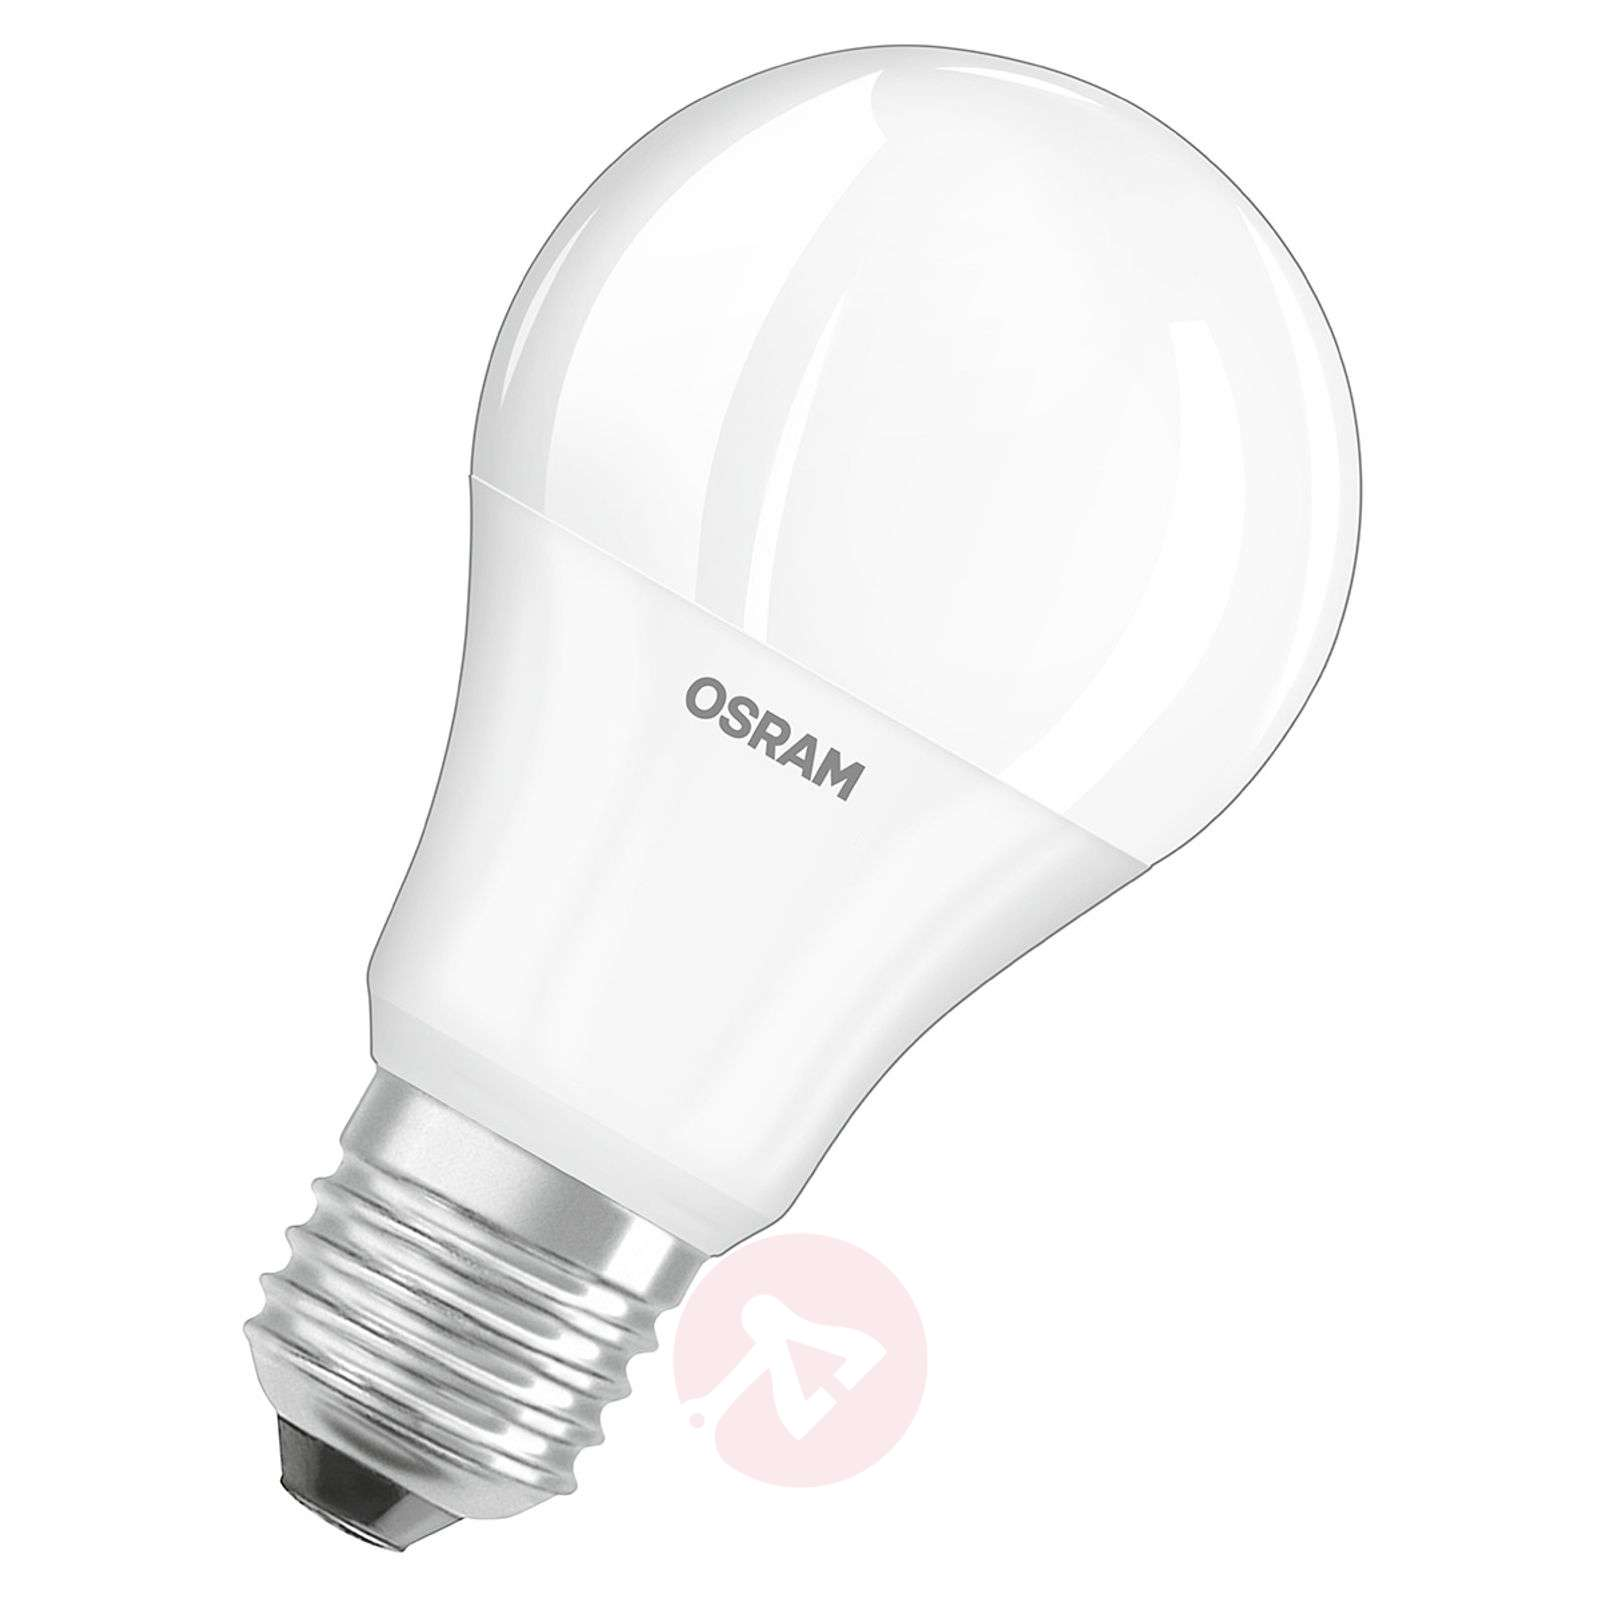 Ampoule LED Superstar E27 10,5W 827 int variable-7260747-02